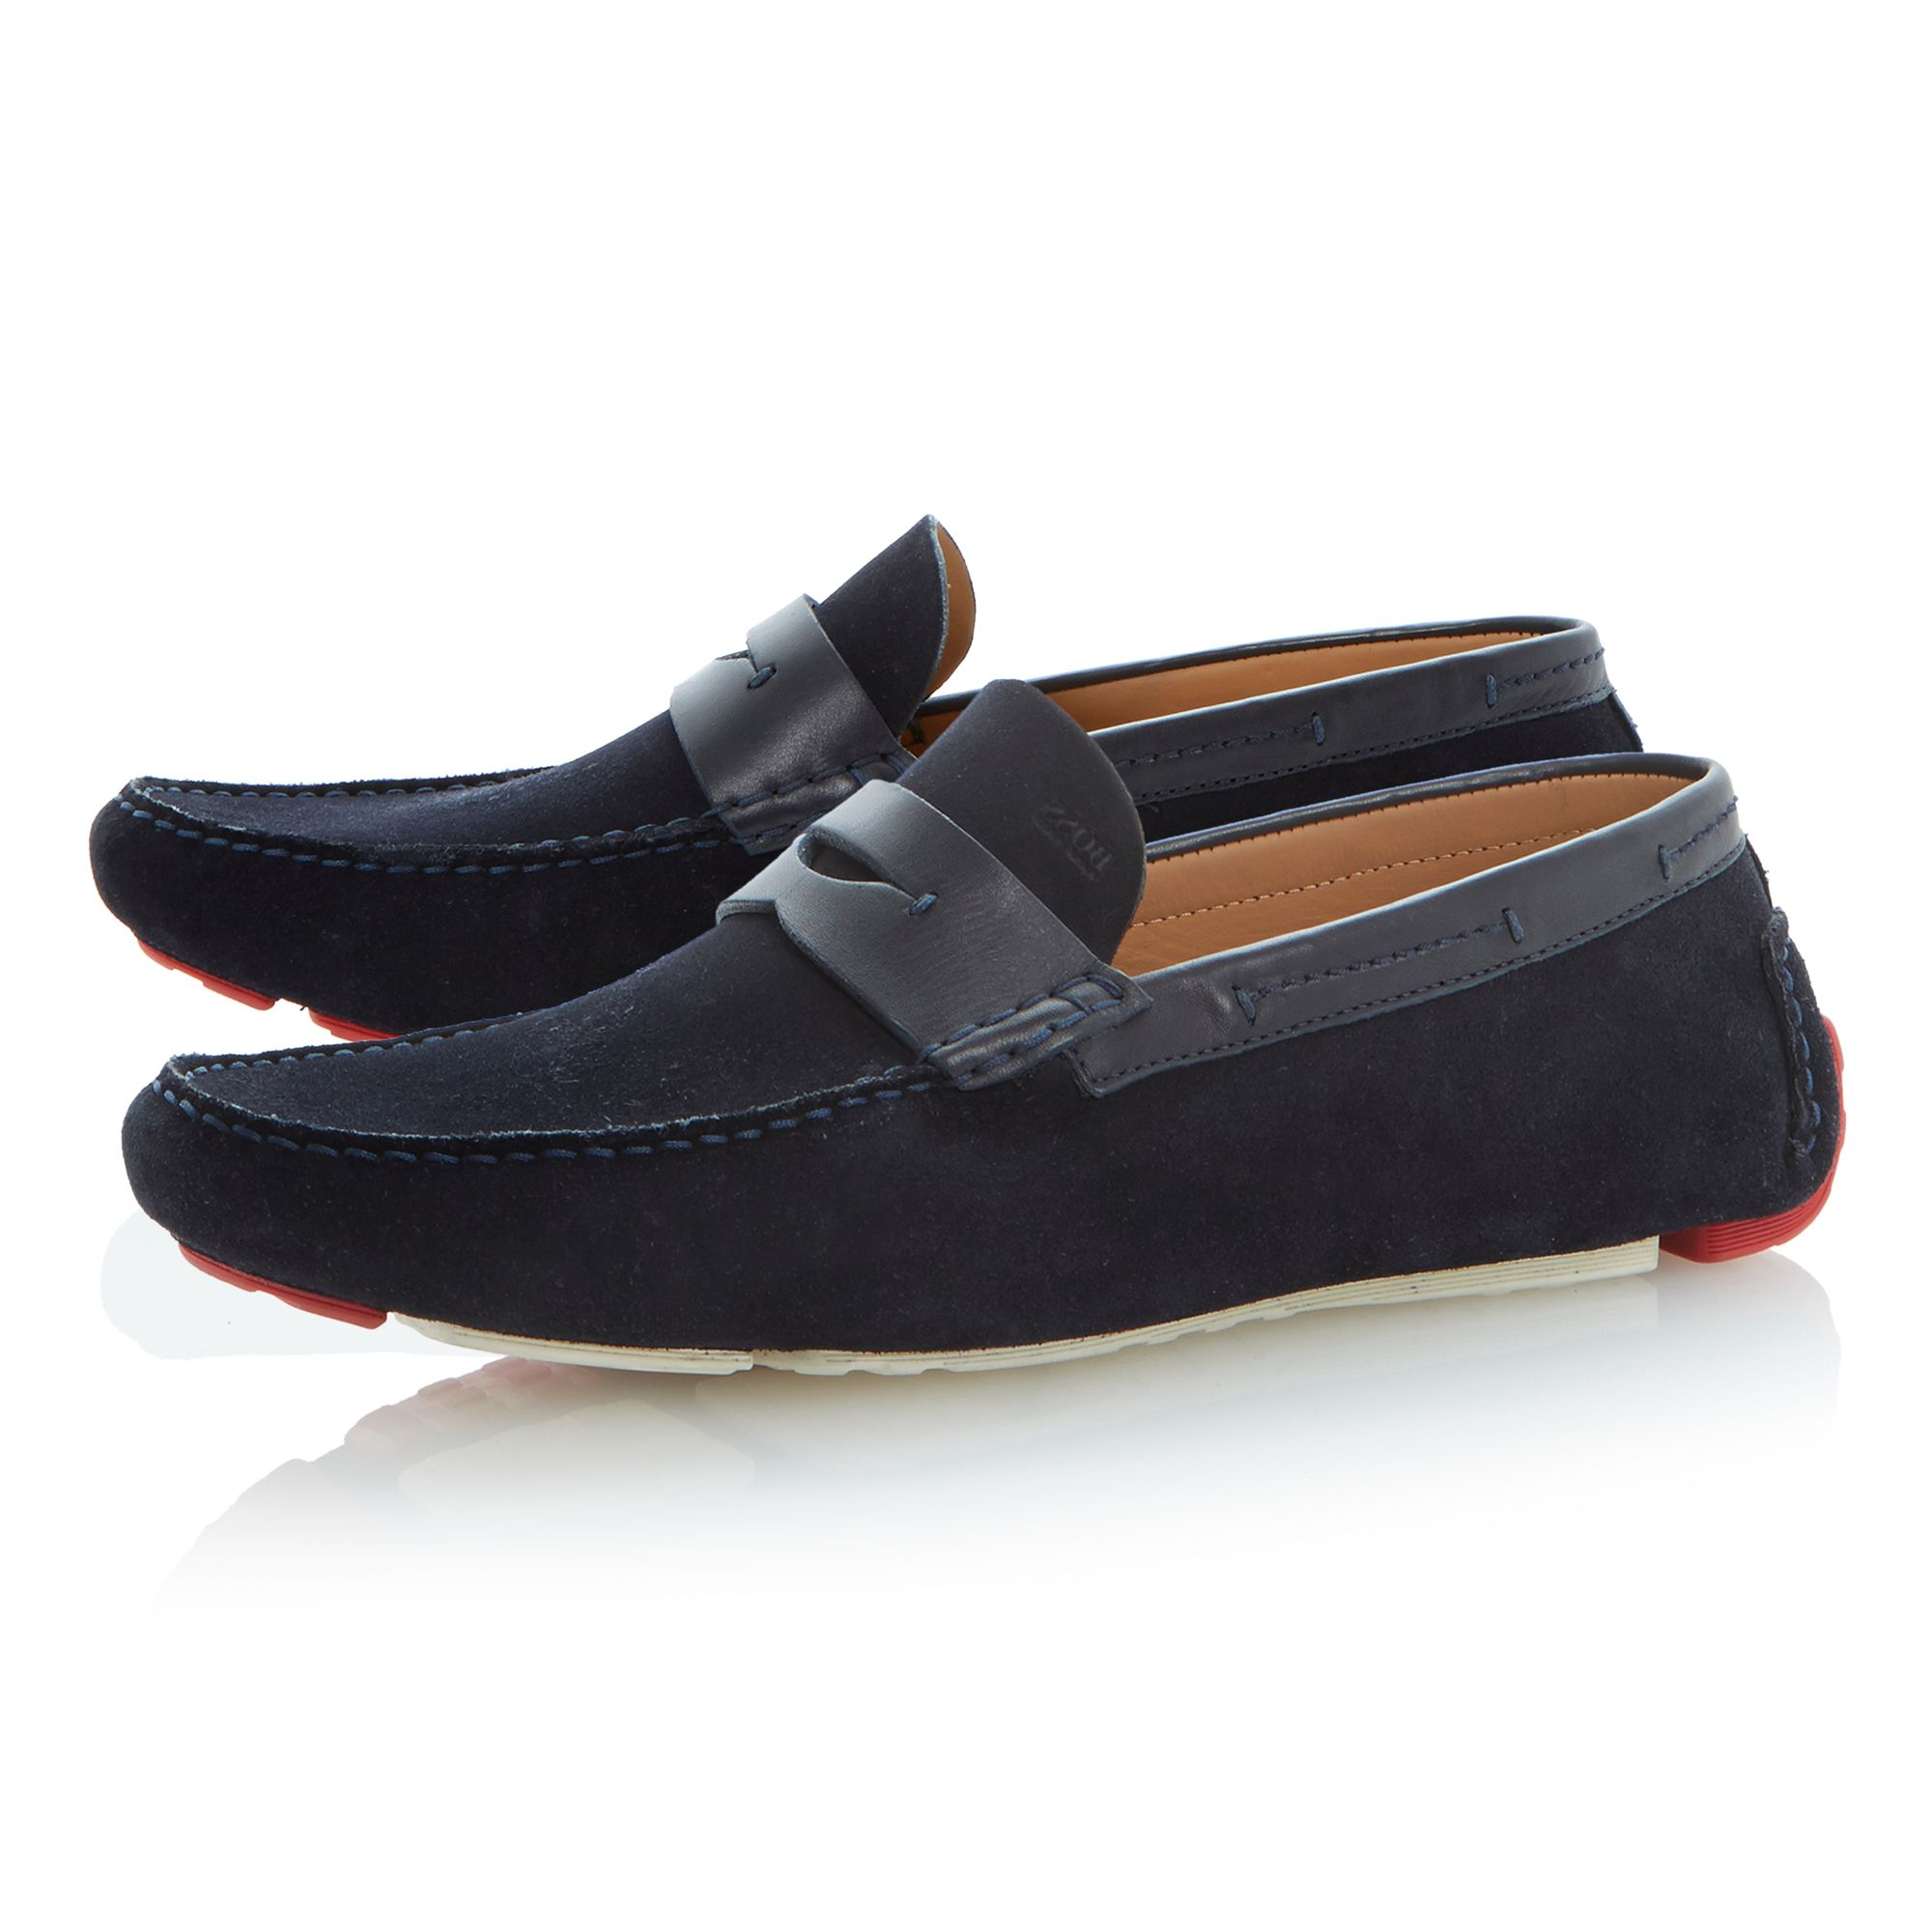 Drennot driver loafers